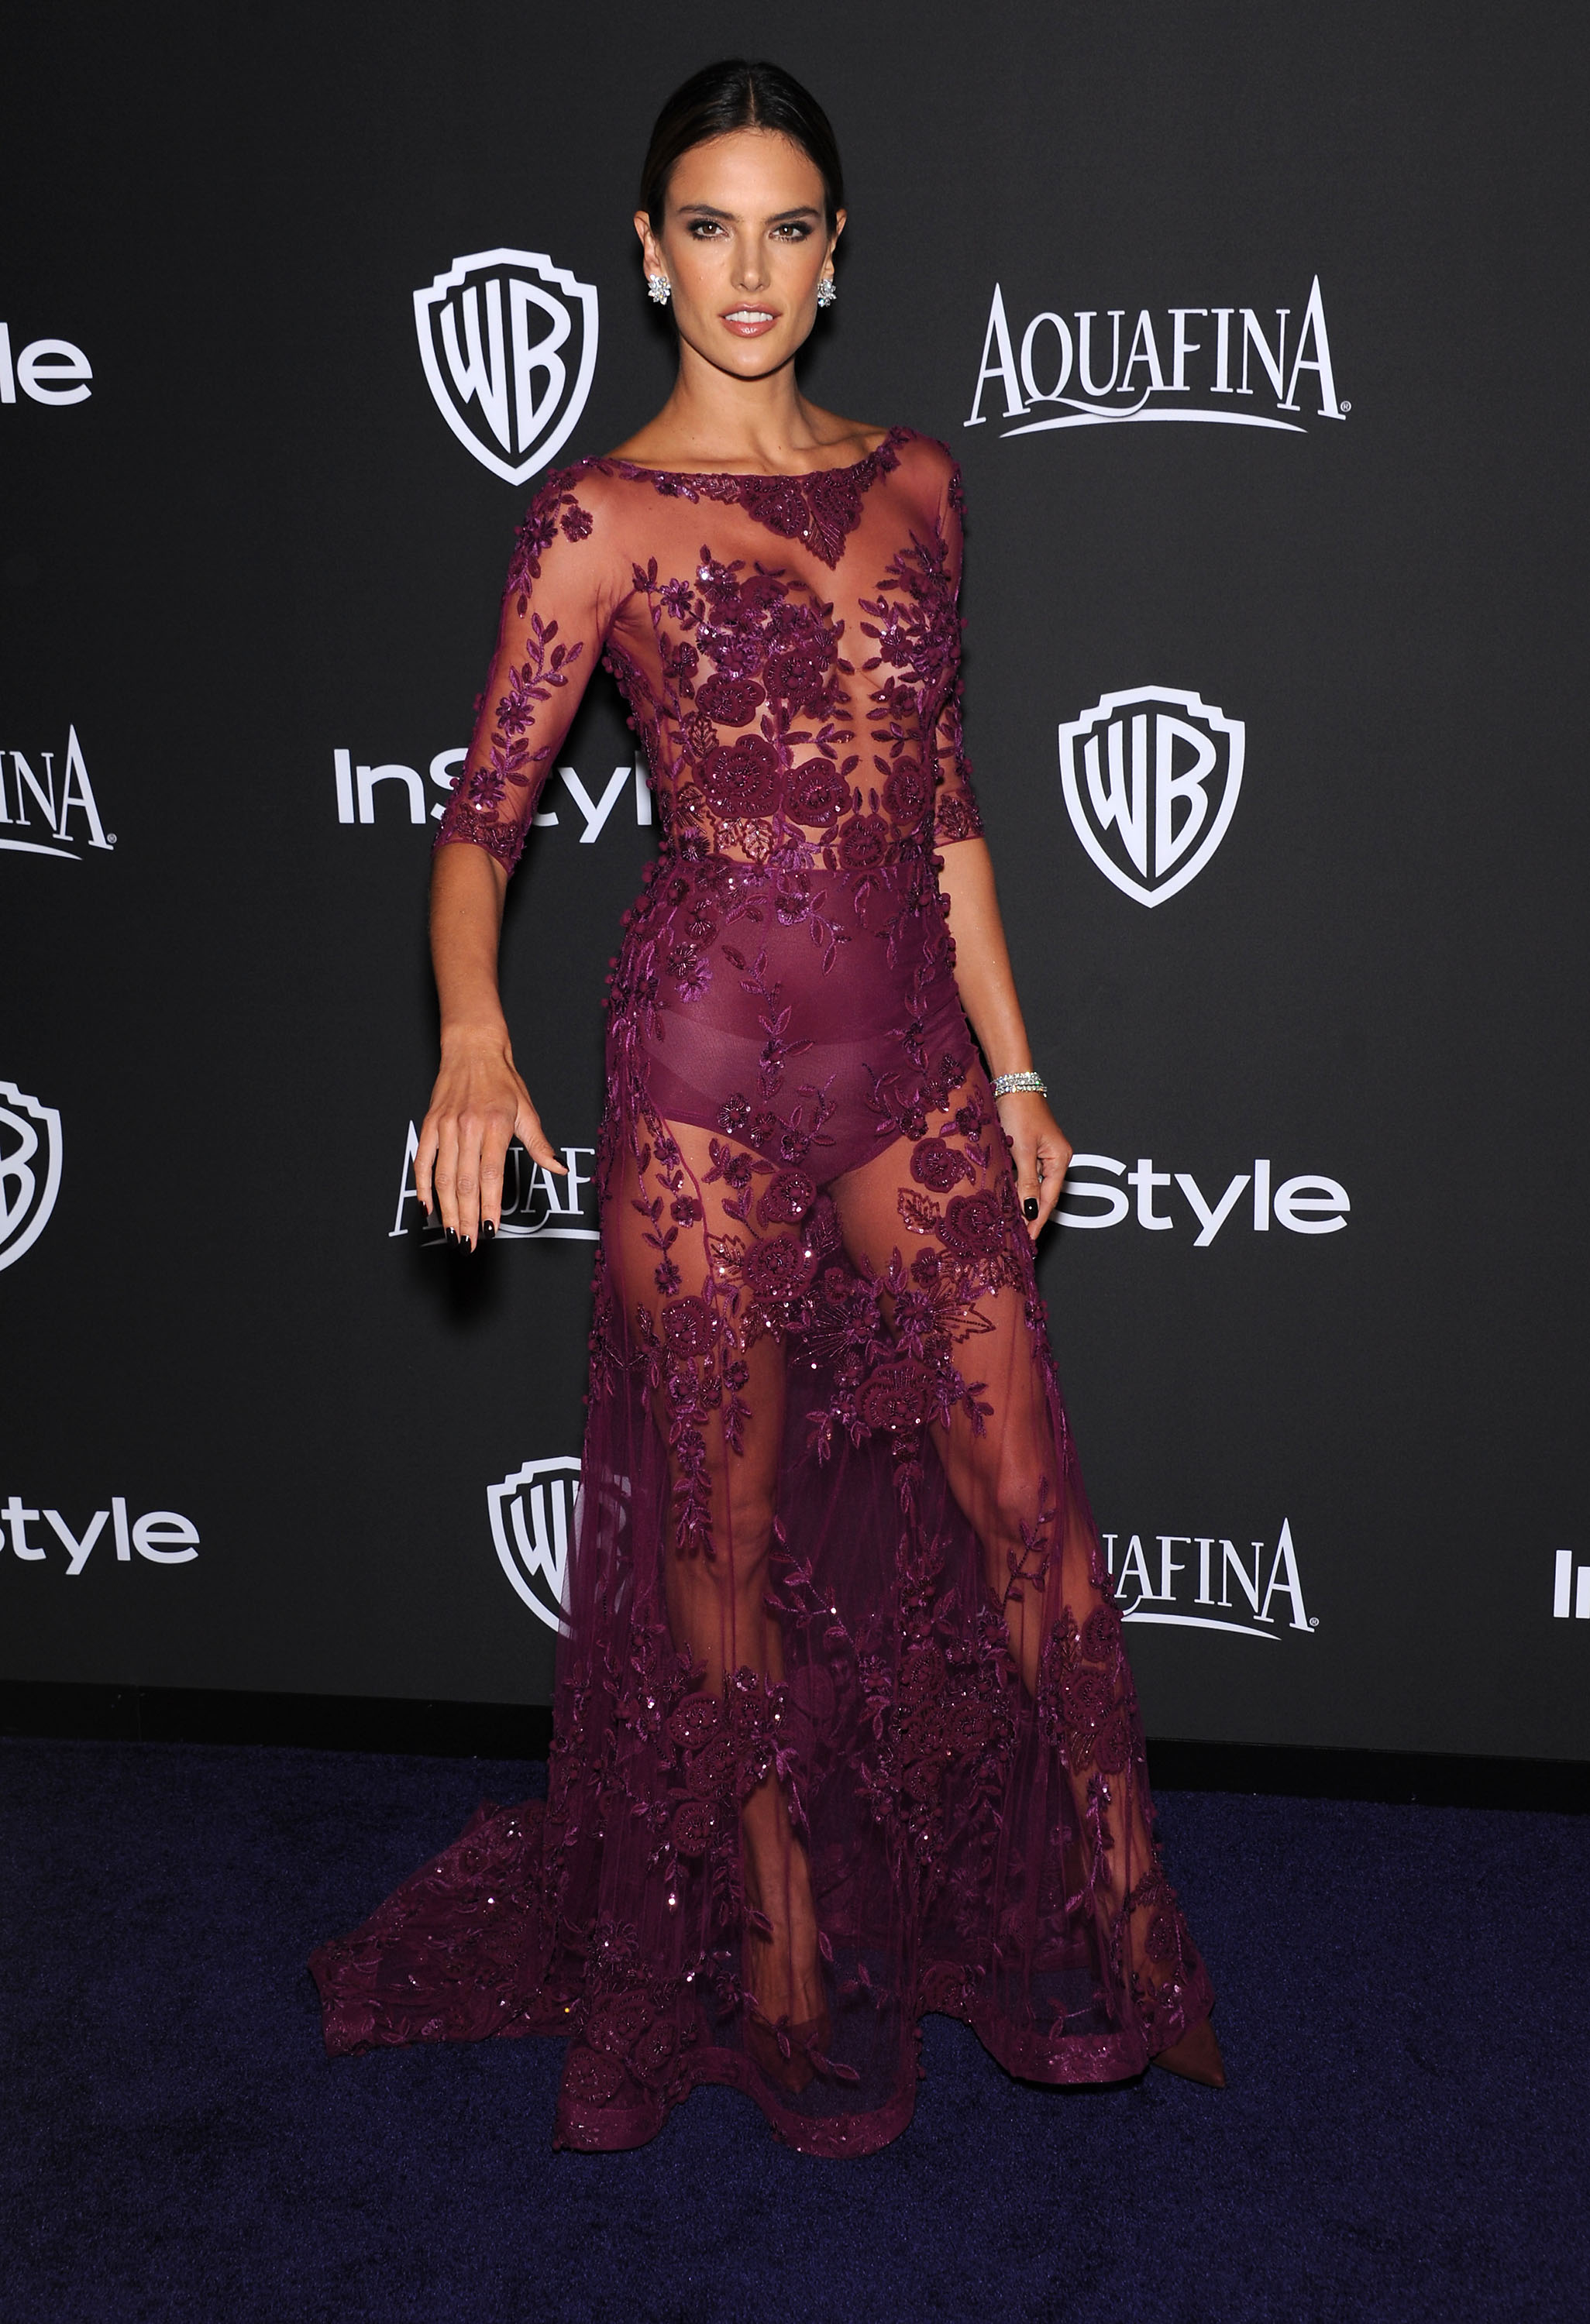 Stars arrive to the WB InStyle Golden Globe After Party at the Beverly Hilton Hotel. Pictured: Alessandra Ambrosio Ref: SPL926040 120115 Picture by: Nate Beckett/Splash News Splash News and Pictures Los Angeles:310-821-2666 New York: 212-619-2666 London: 870-934-2666 photodesk@splashnews.com